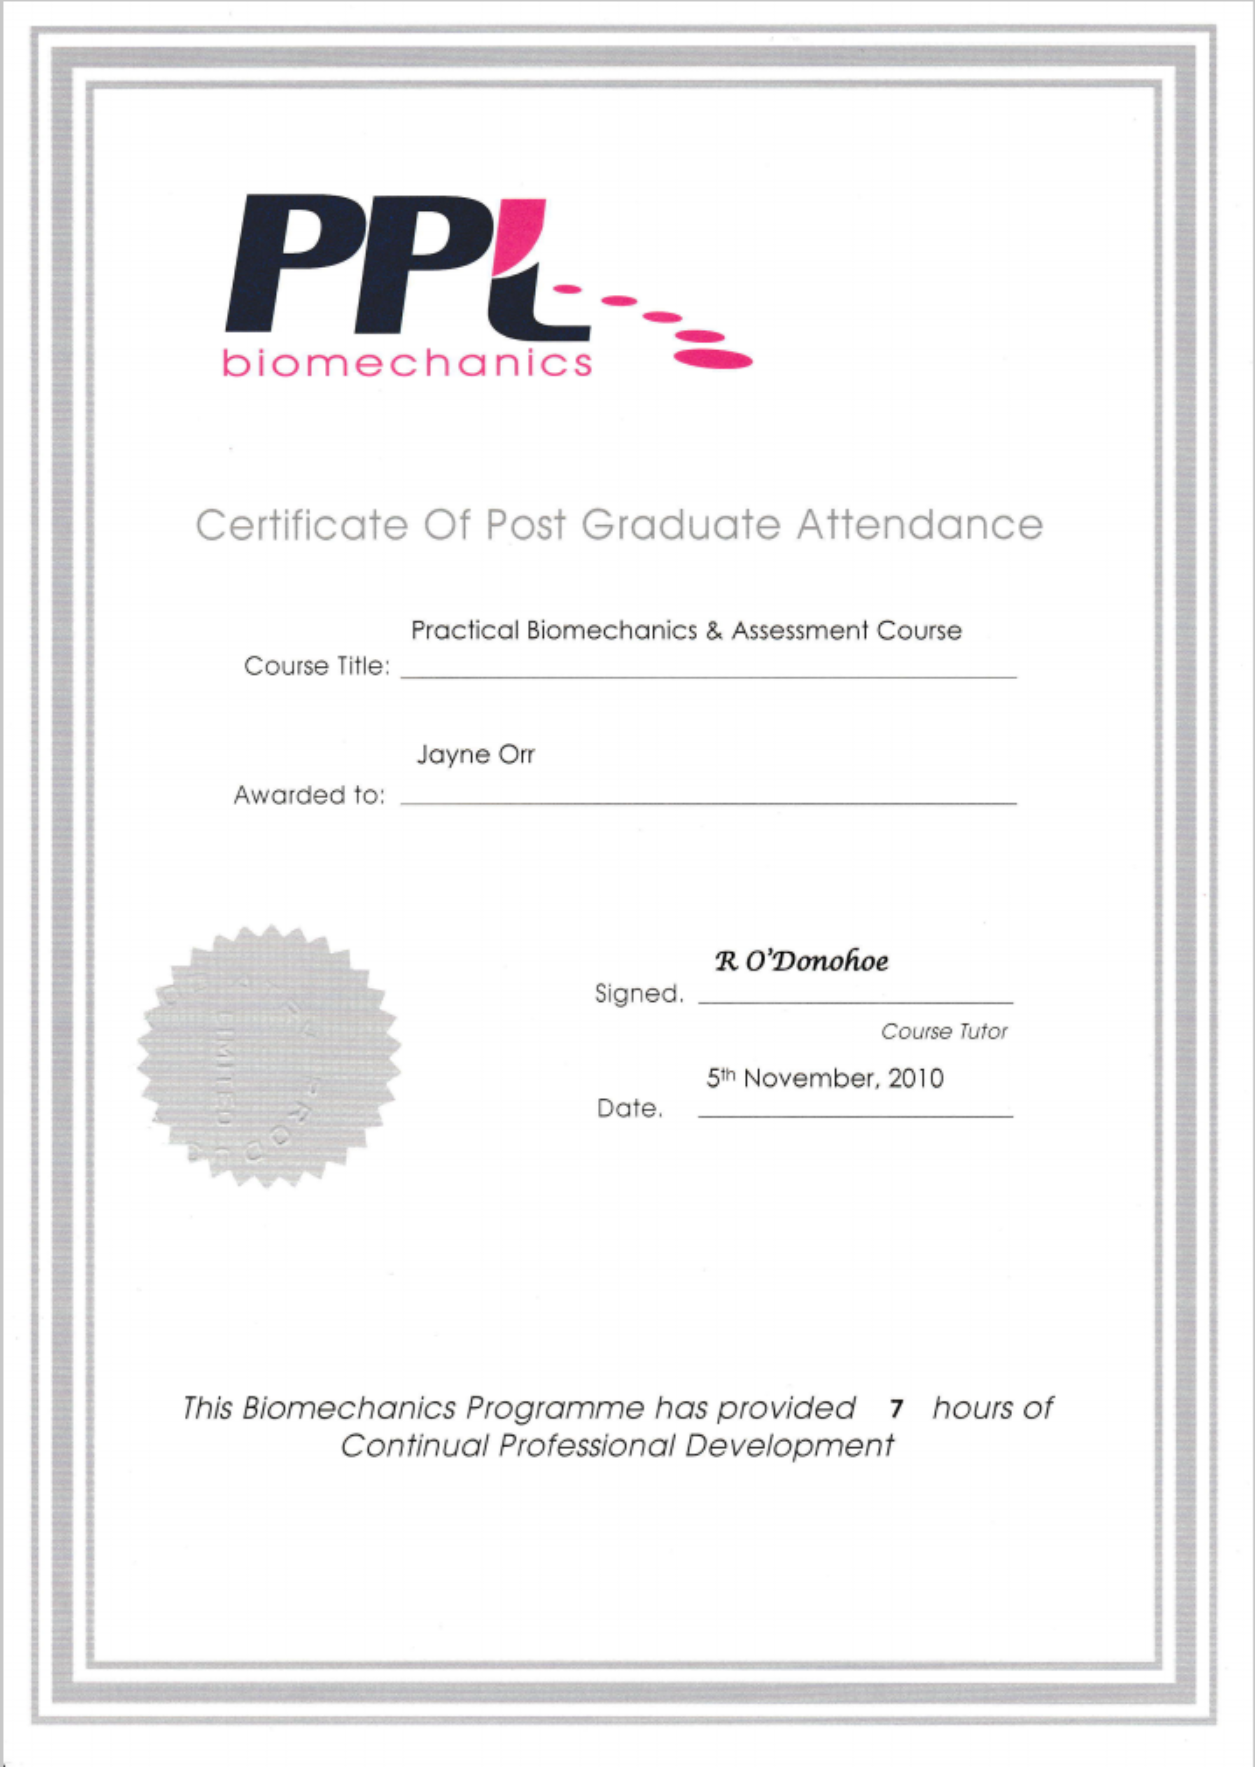 Practical Biomechanics & Assessment Course Certificate